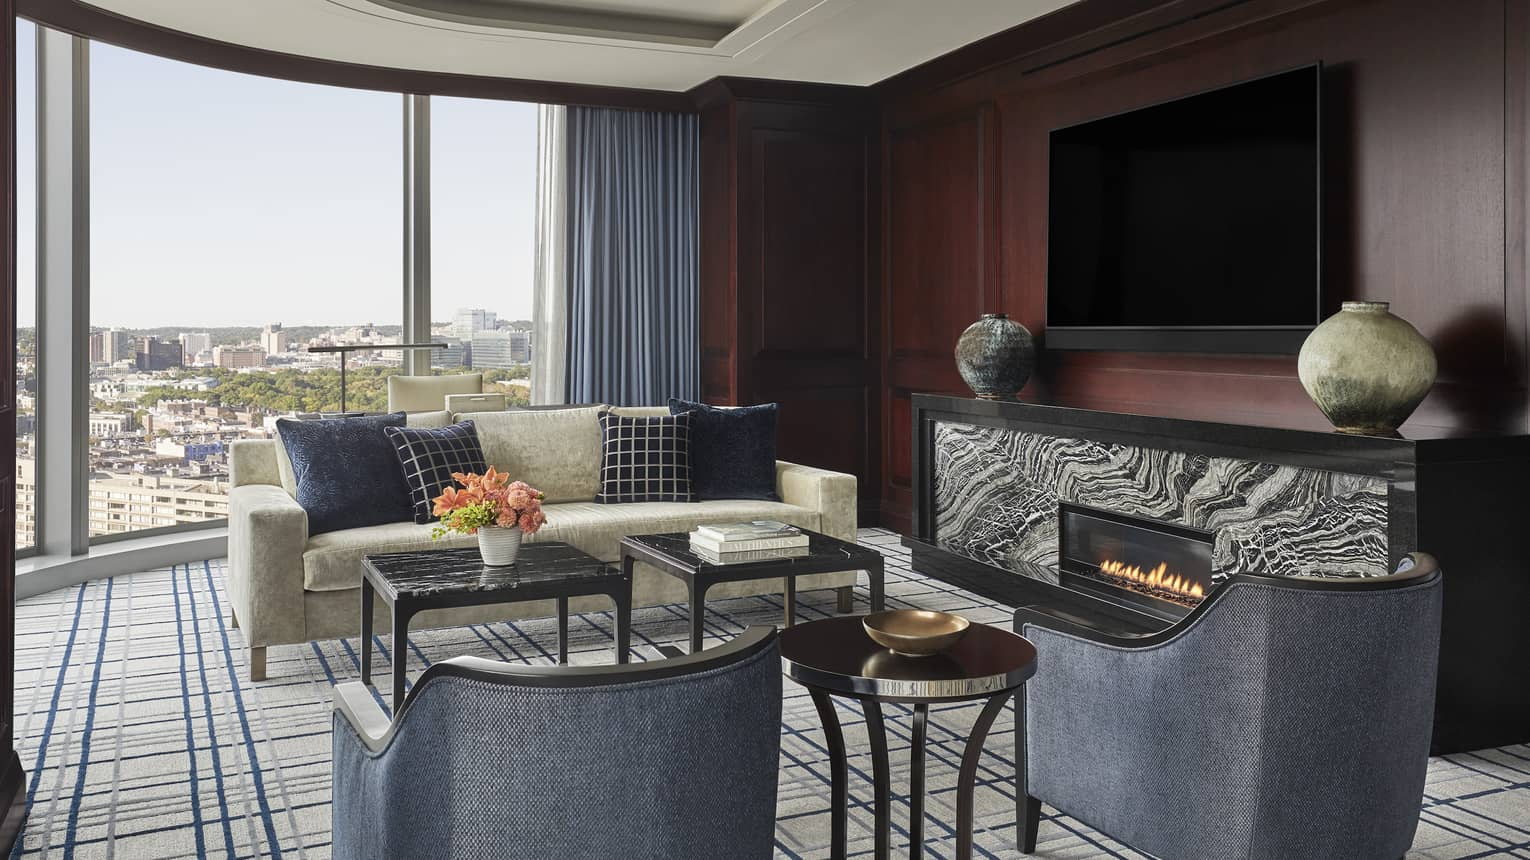 Presidential Suite living area at four seasons hotel boston one dalton